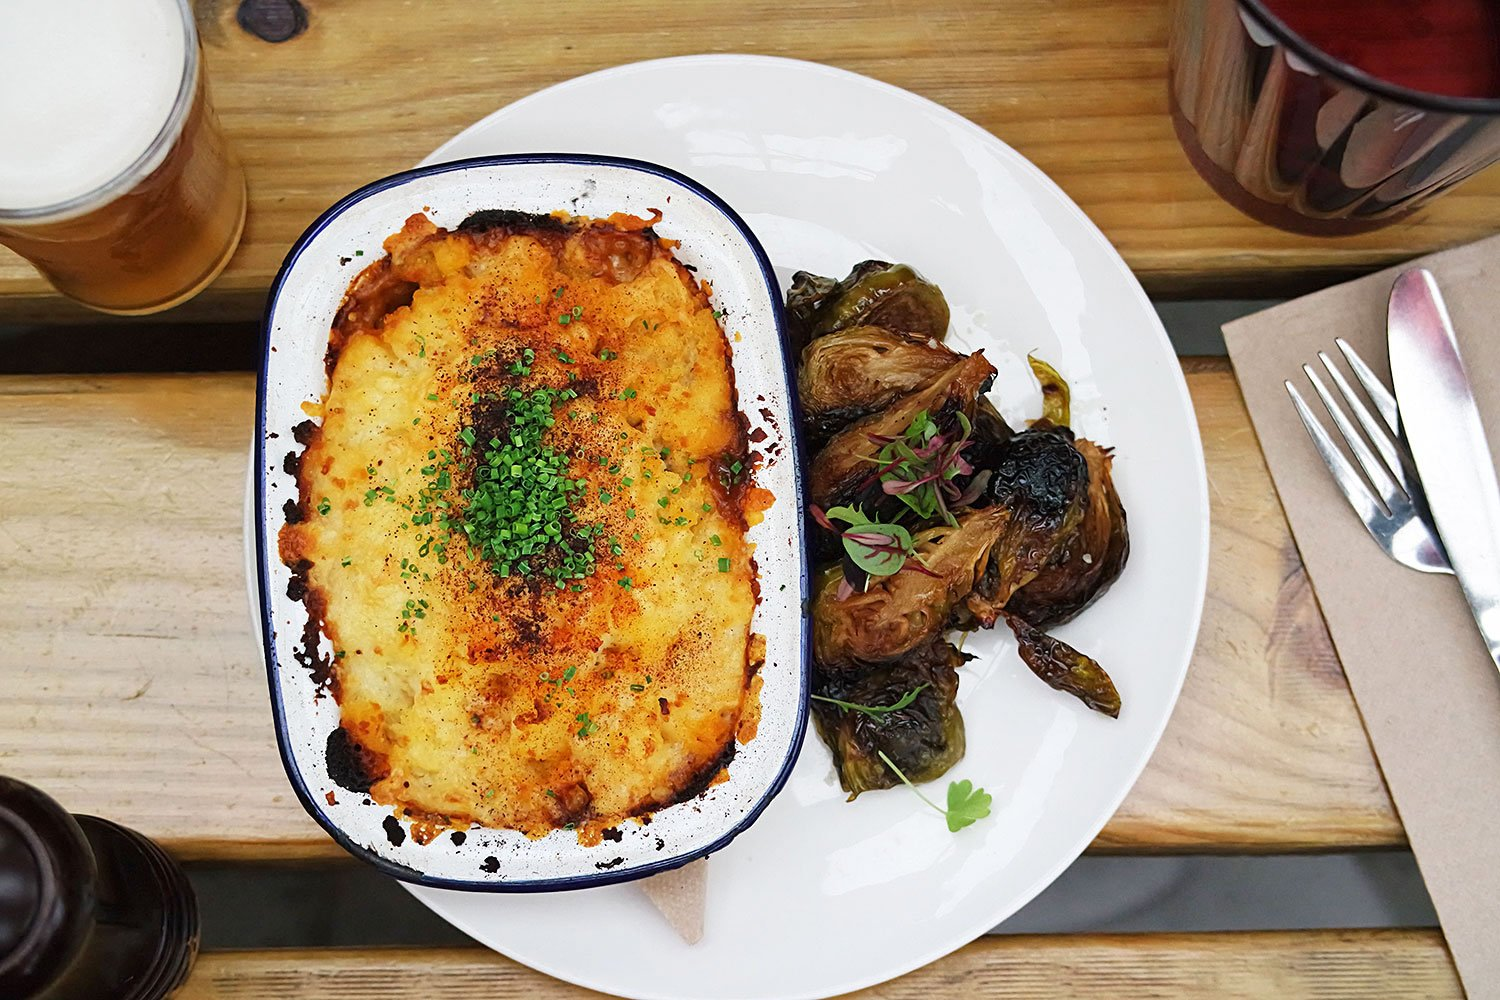 Wagyu beef cheek and tail cottage pie, cheesy mash and roasted brussel sprouts